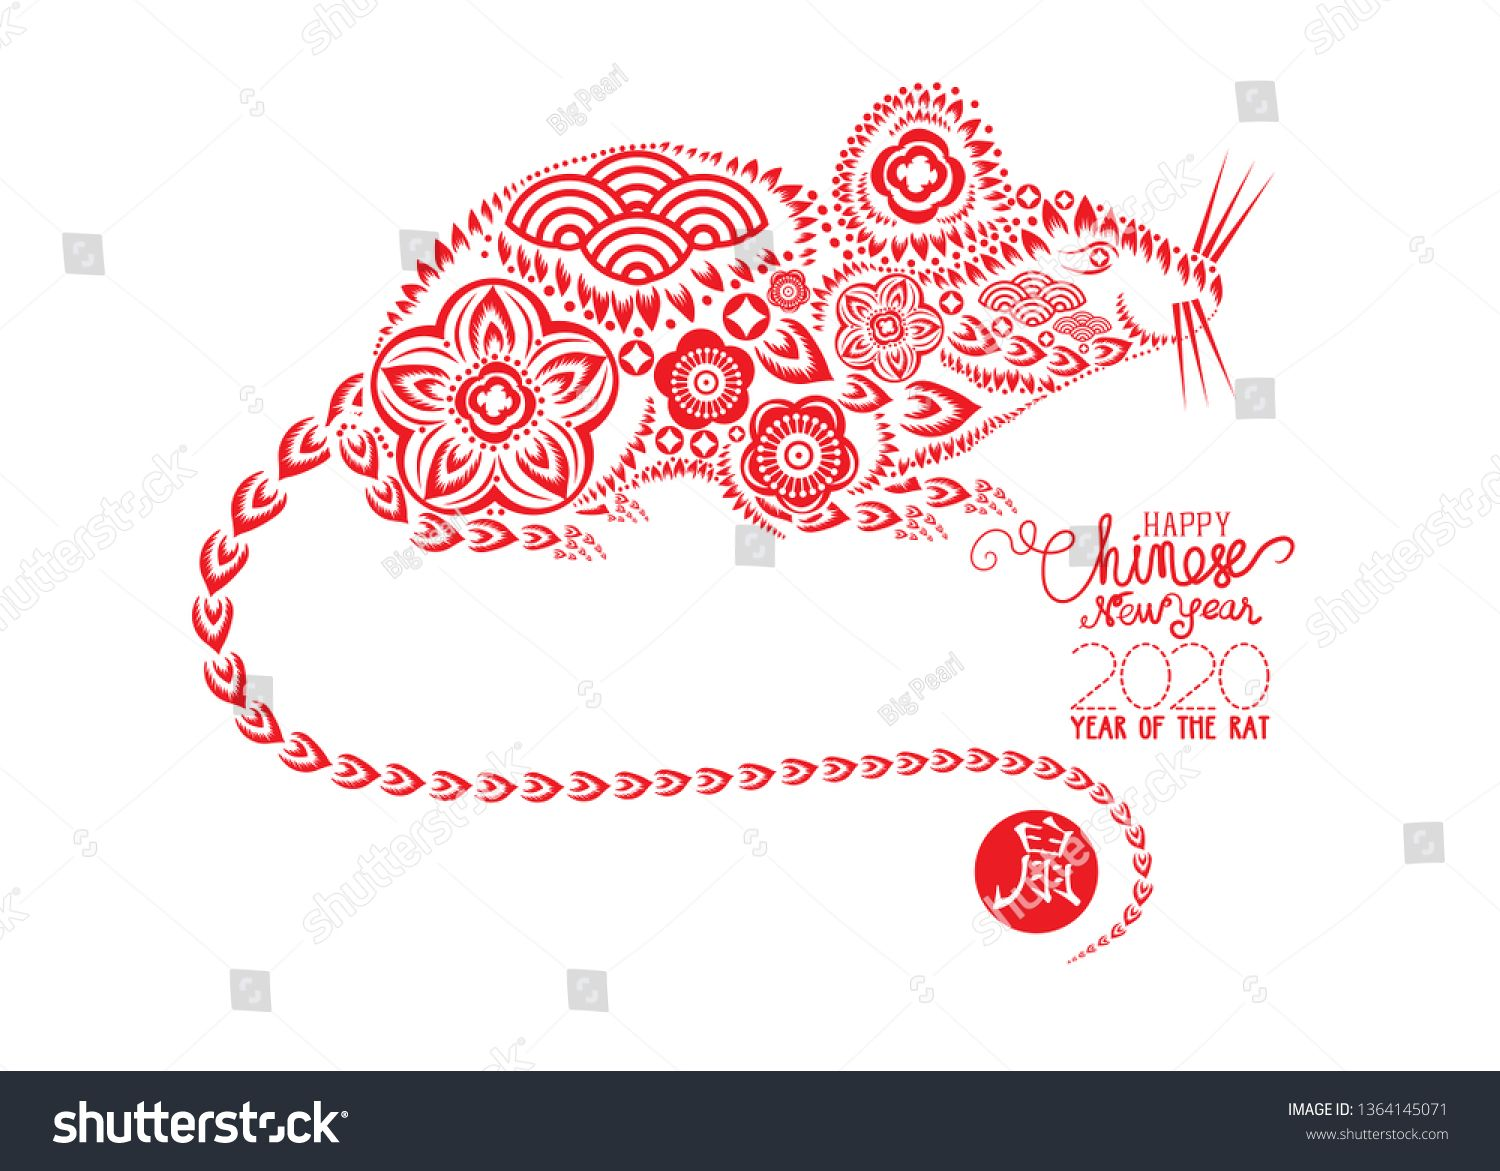 Pin on Chinese New Year 2020. Year of the RAT